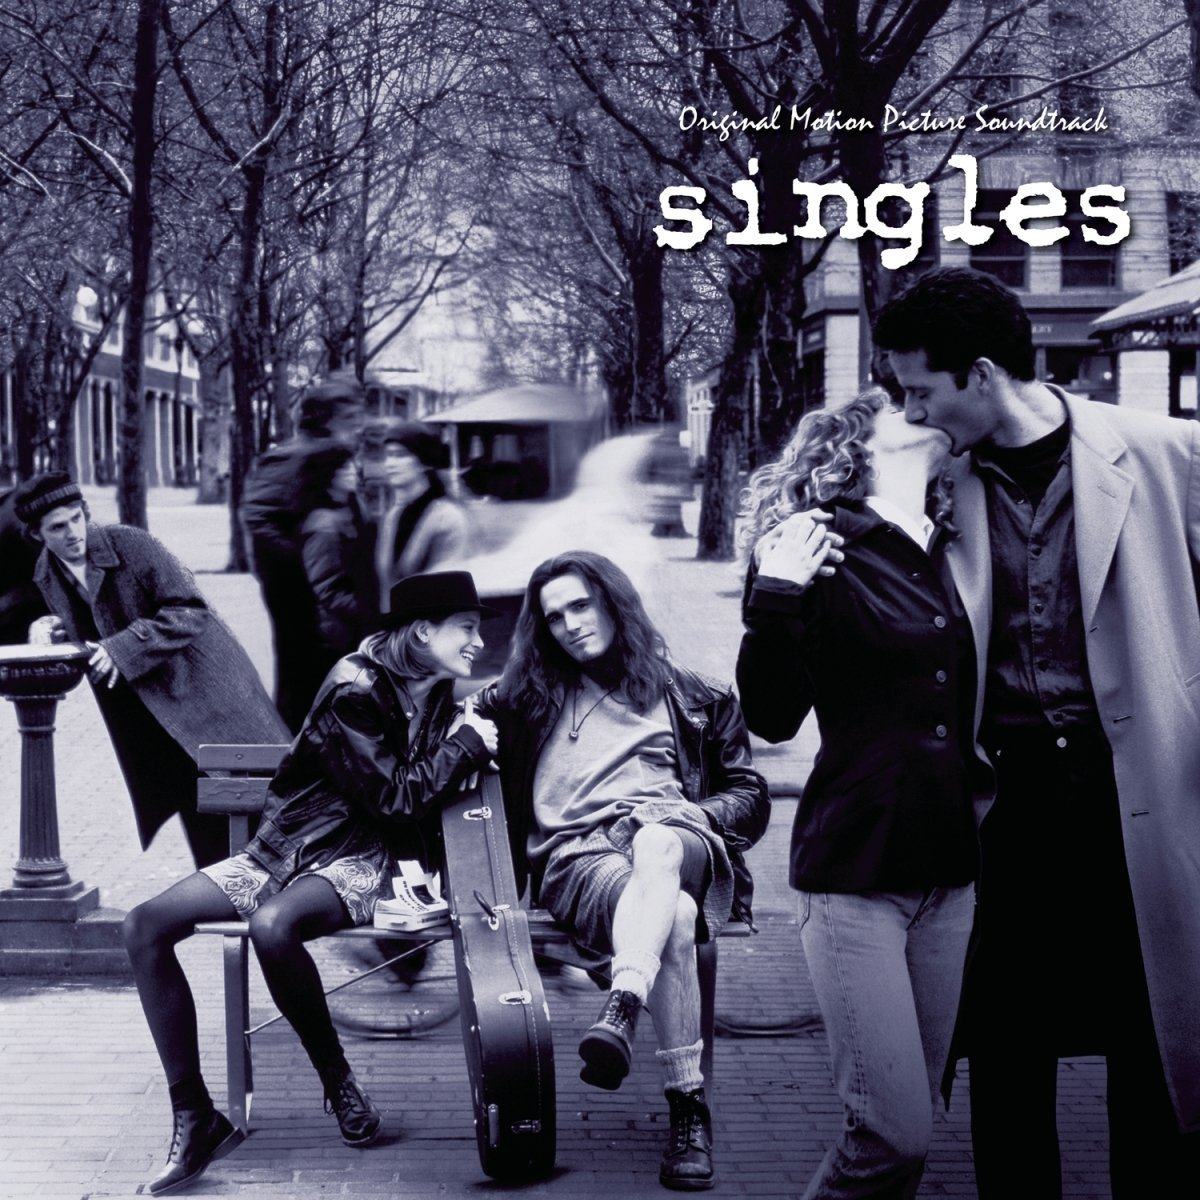 singles The Top 10 Grunge Albums of All Time